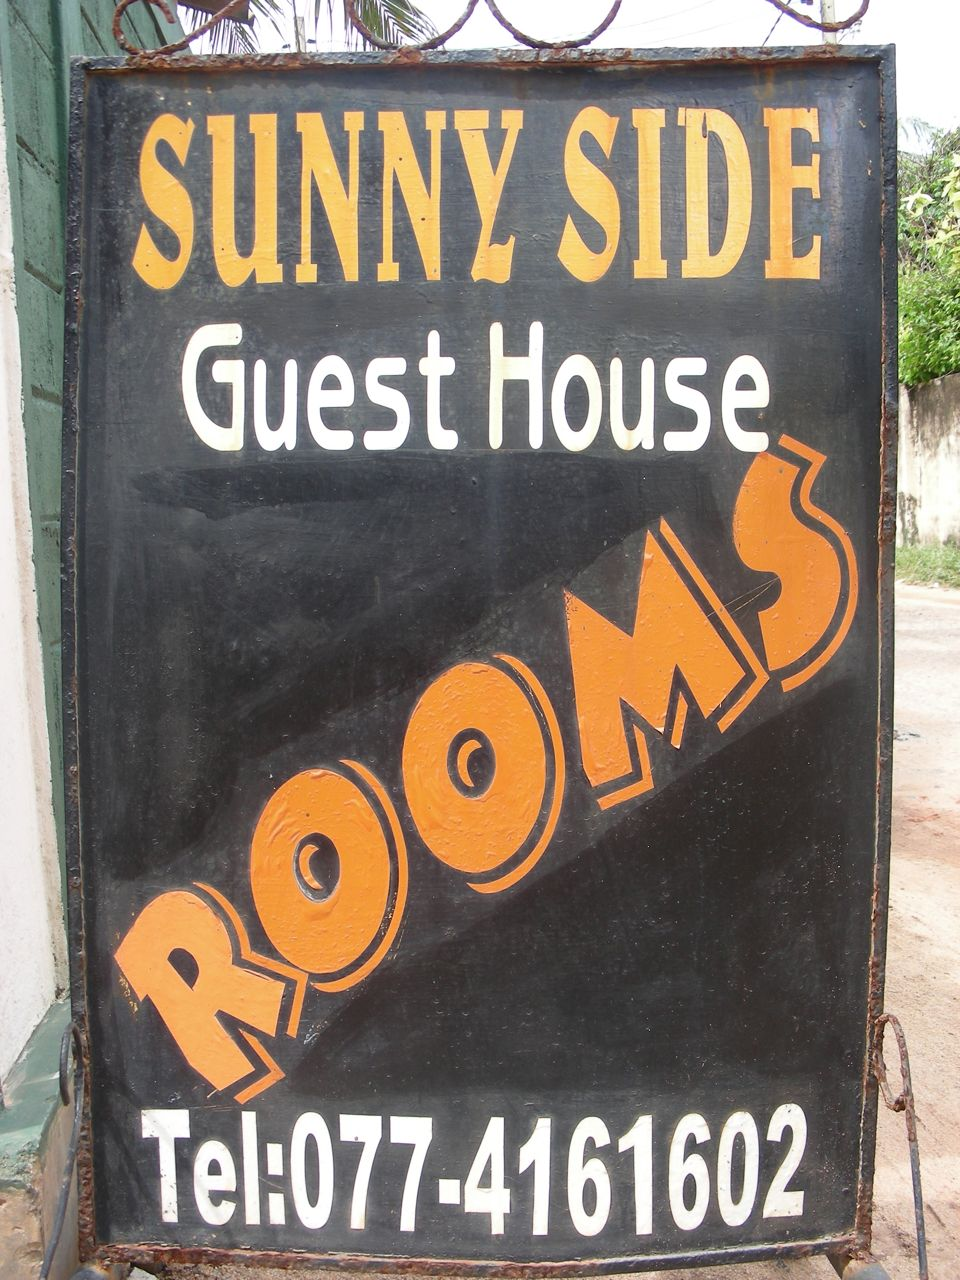 Sunny side guest house